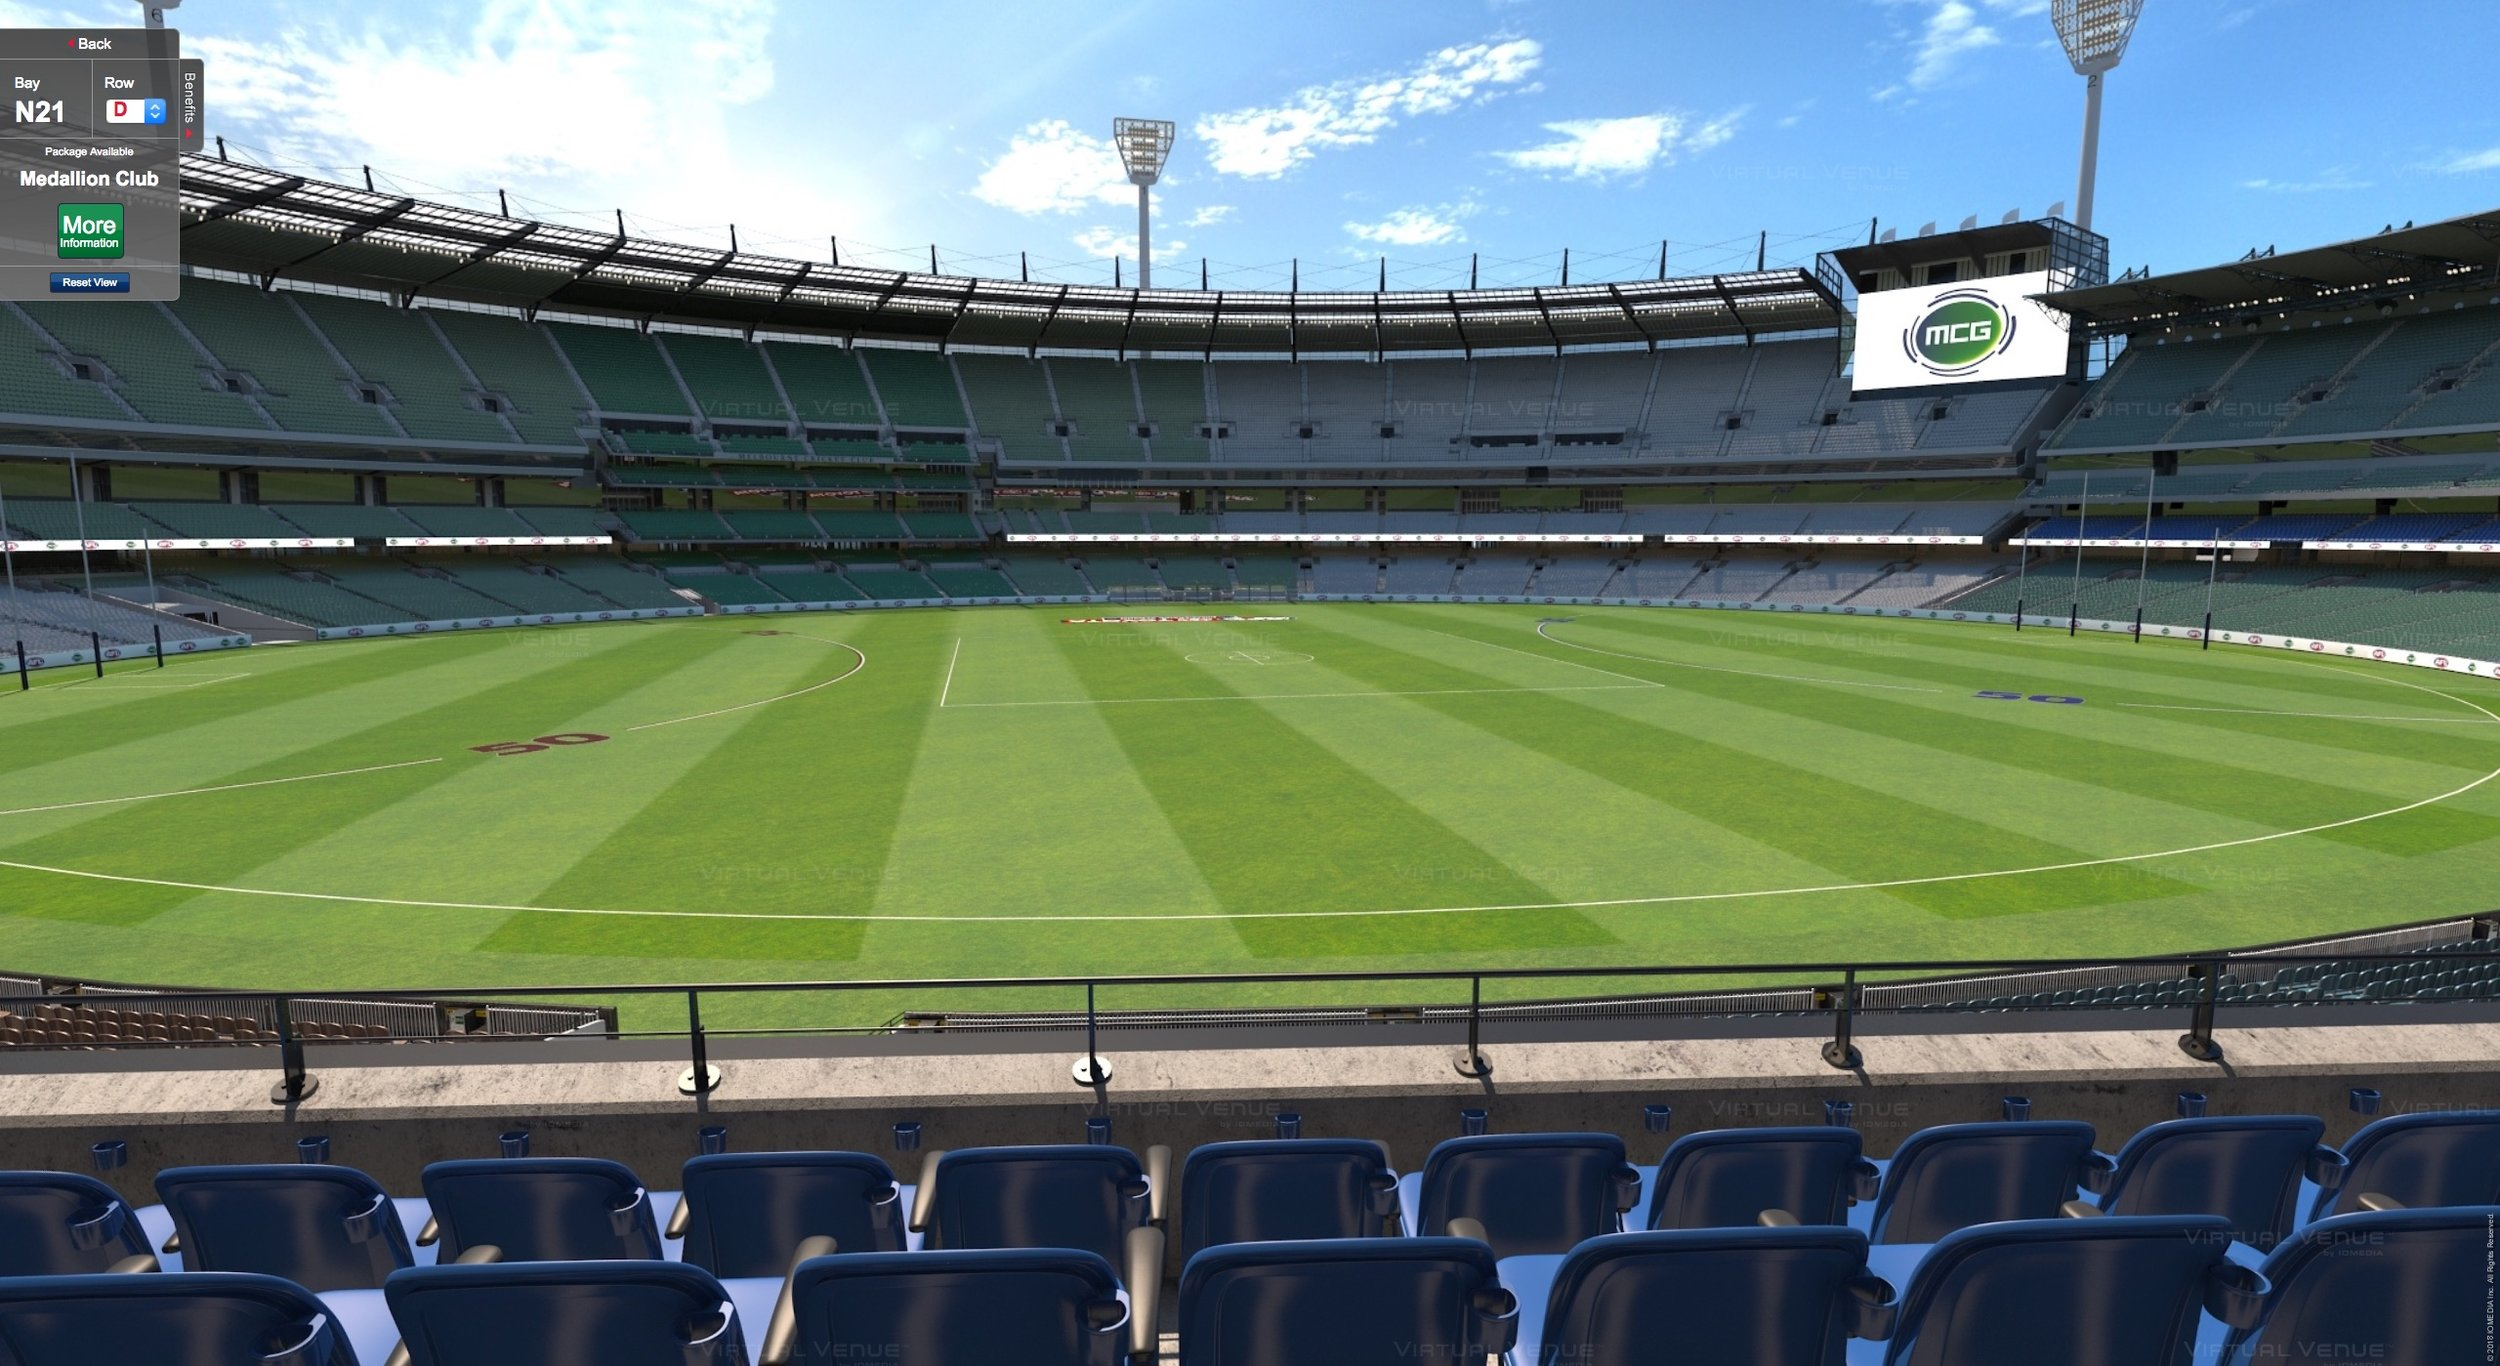 Collingwood v Melbourne MCG Medallion Club seating